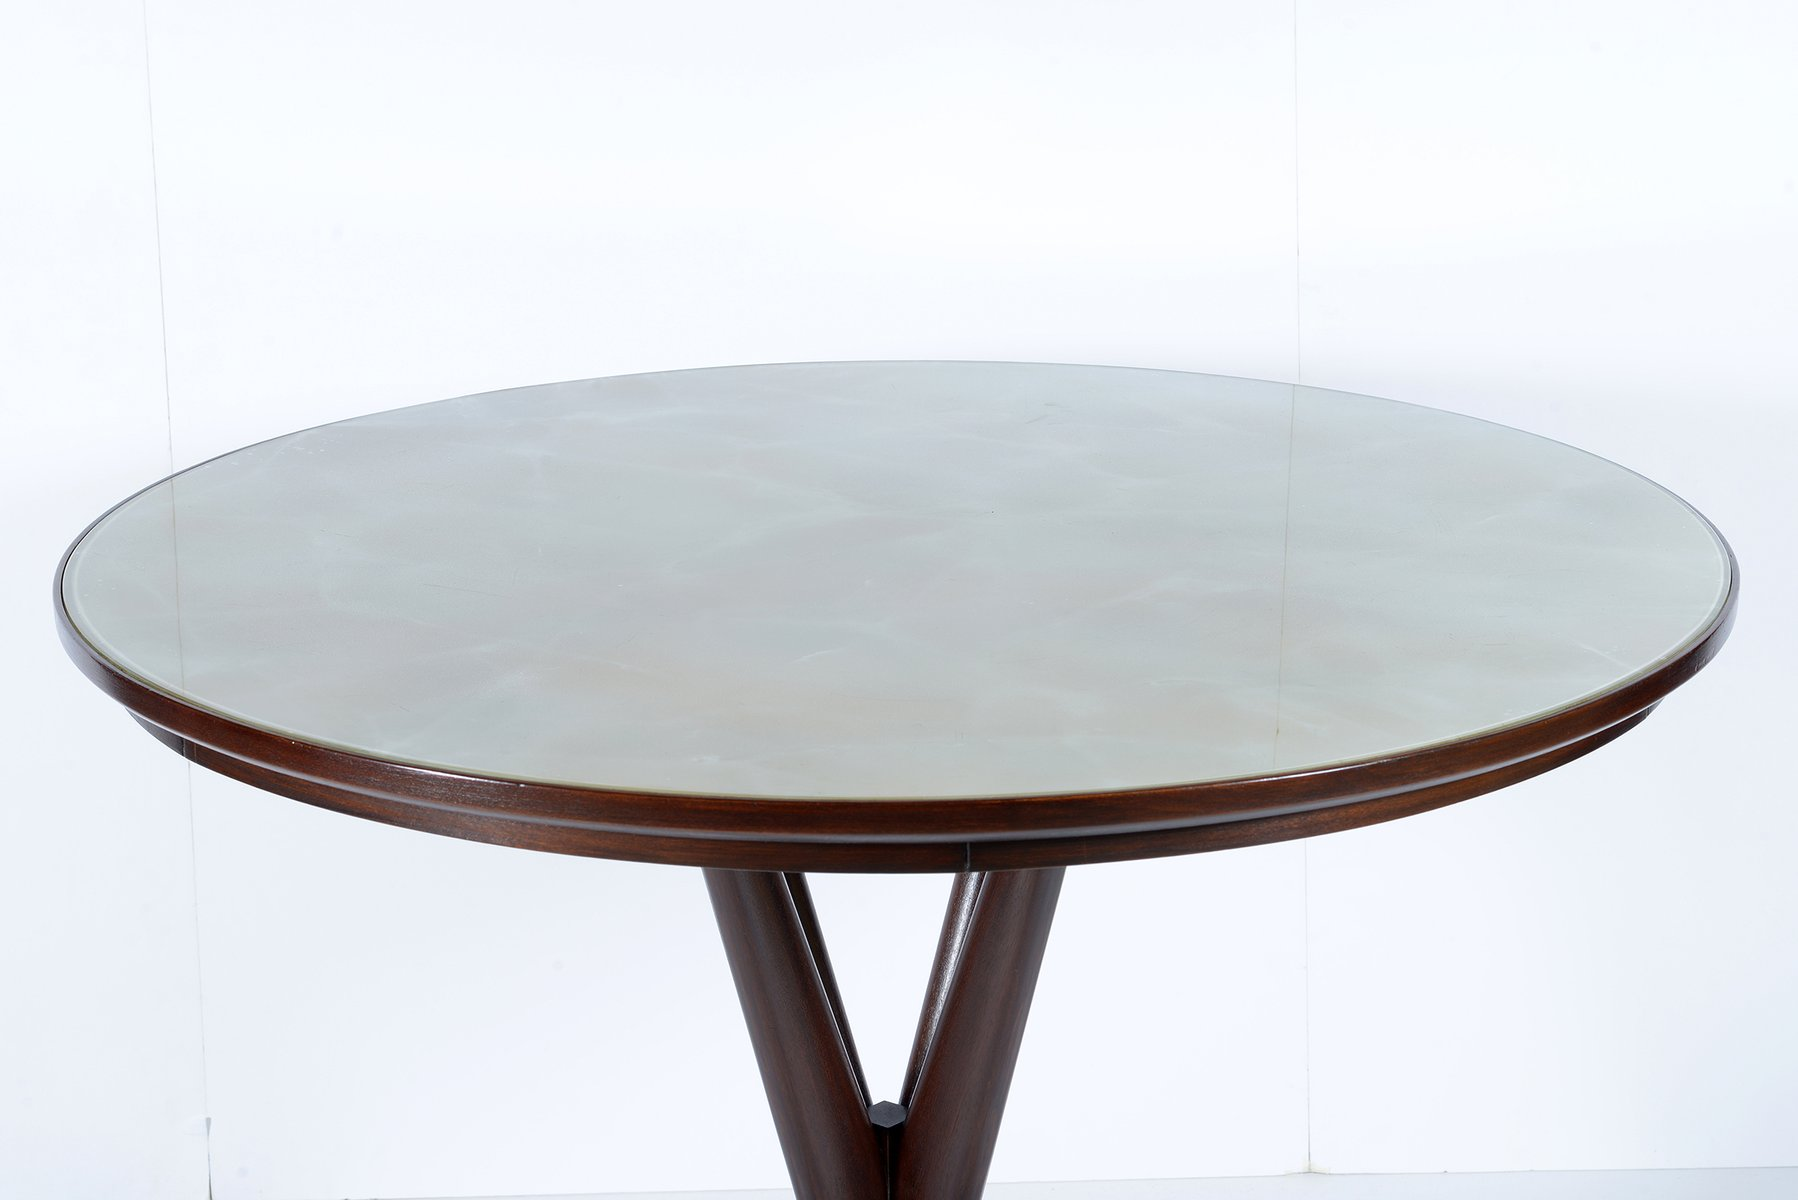 Table Ronde En Verre But Table Ronde Avec Plateau En Verre Italie 1950s En Vente